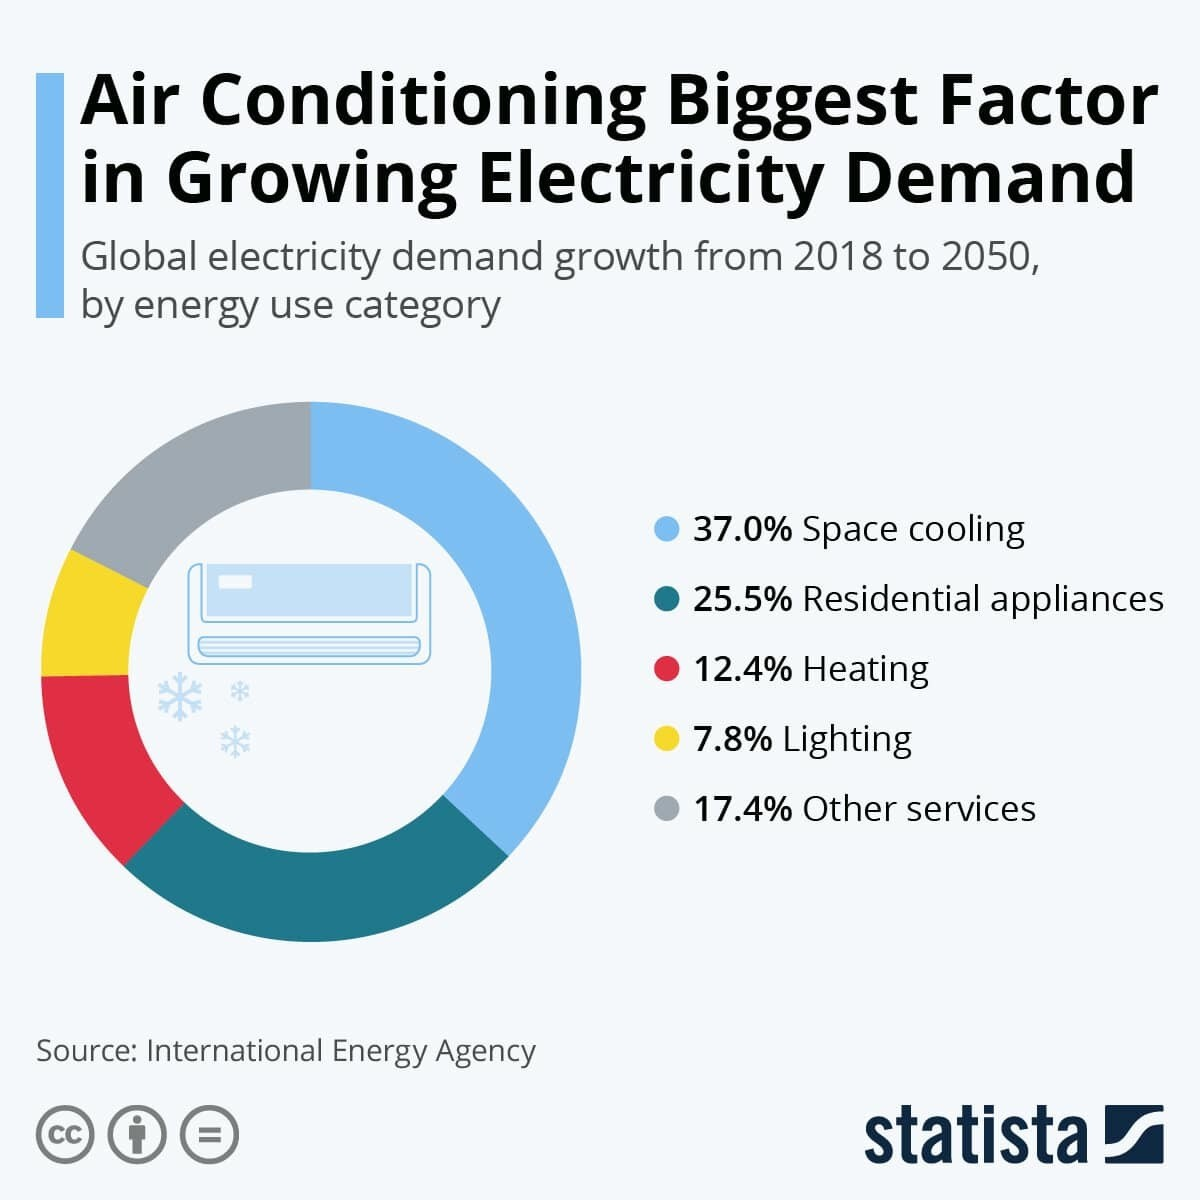 Air Conditioning Biggest Factor in Growing Electricity Demand